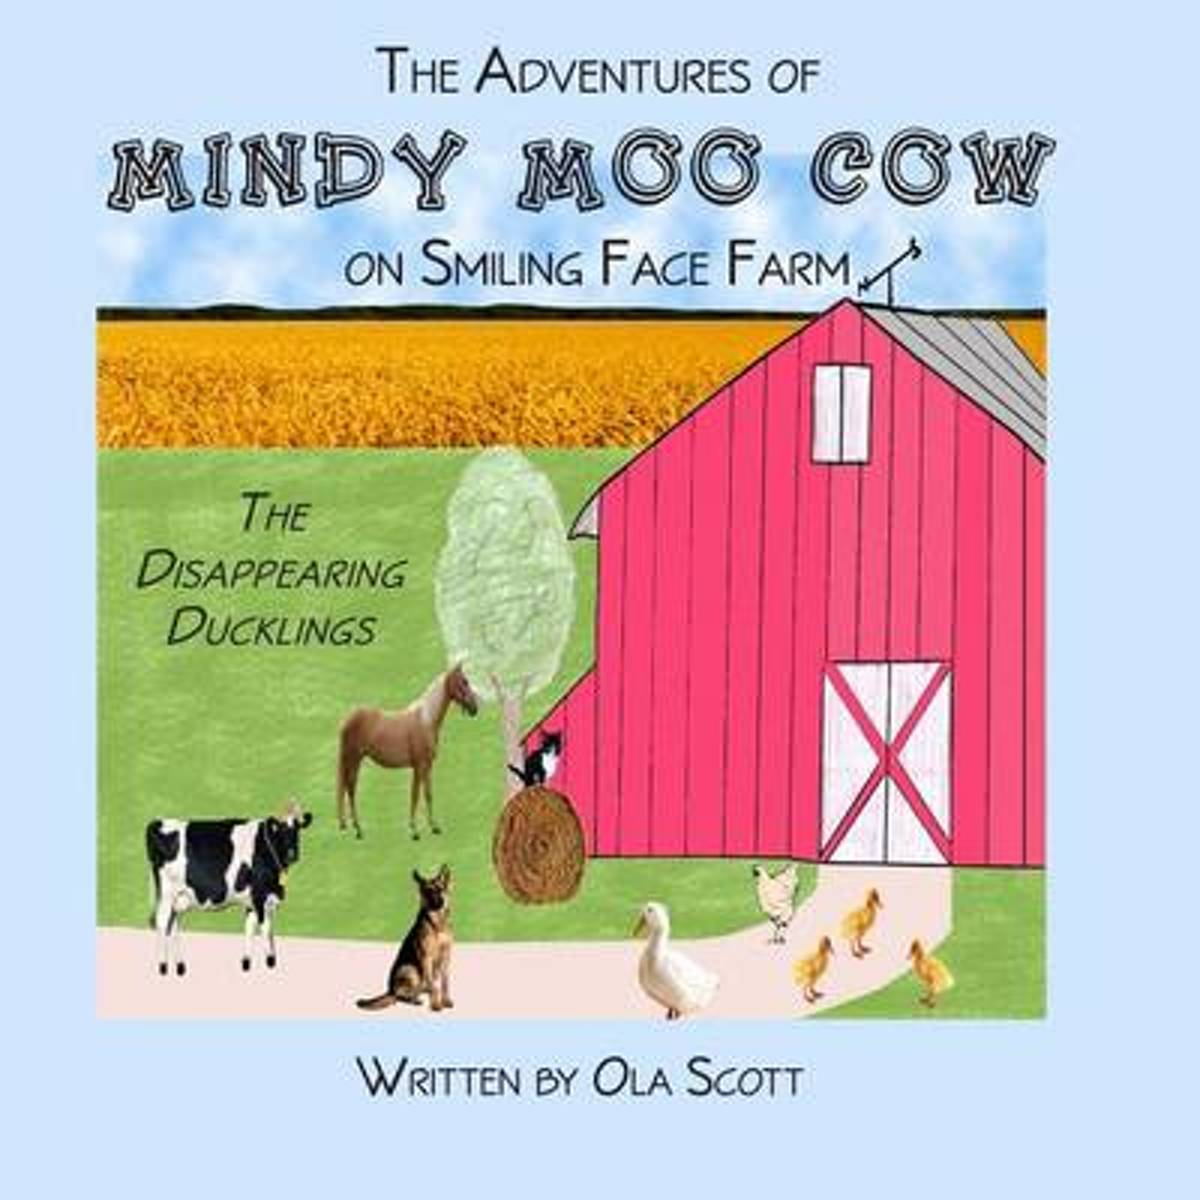 The Adventures of Mindy Moo Cow on Smiling Face Farm